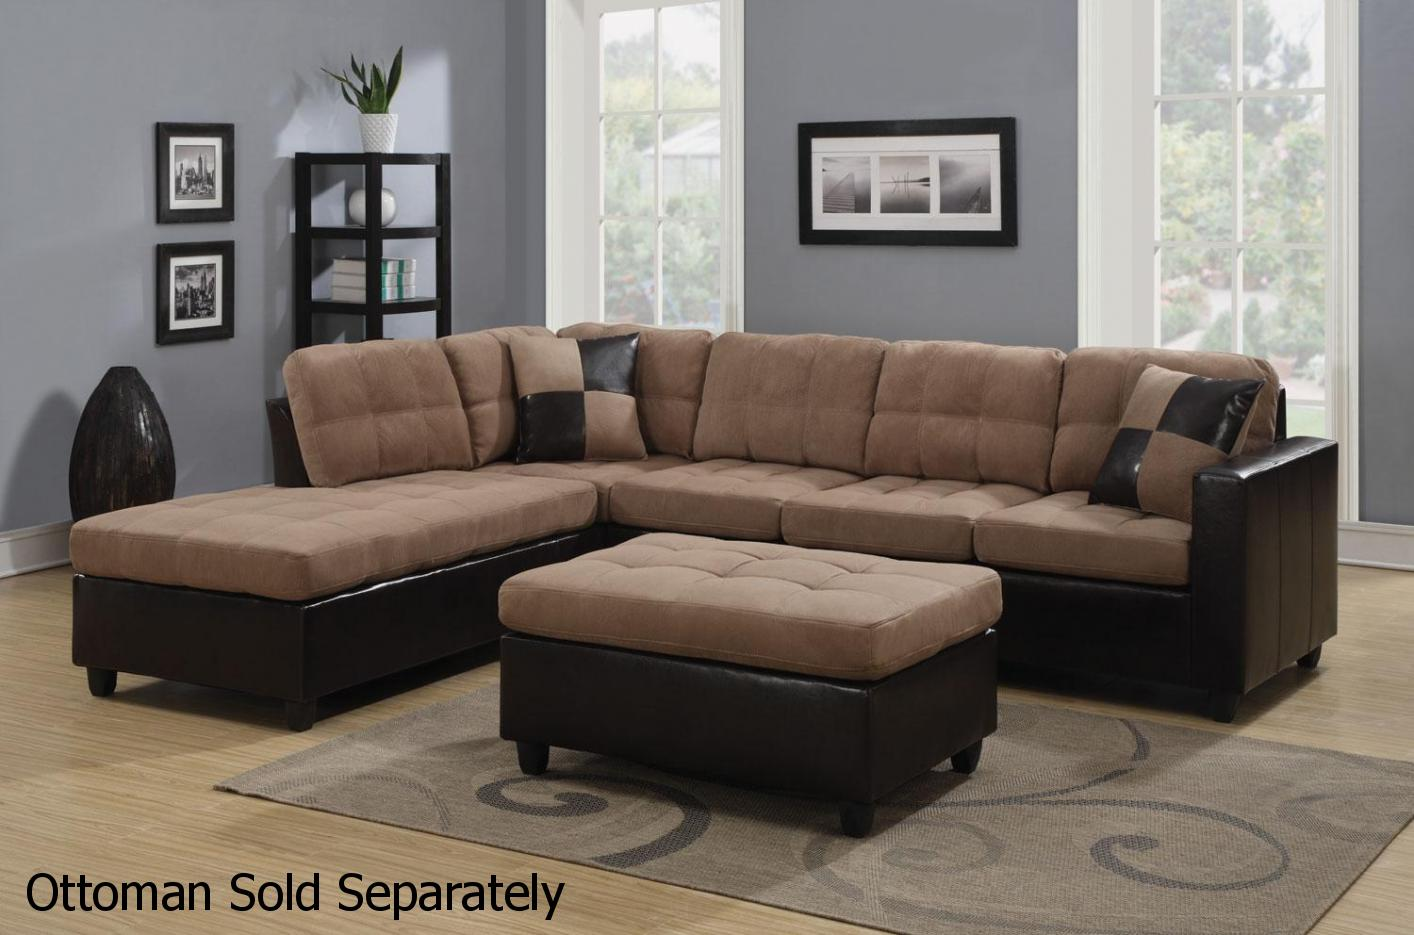 good dark top sectional fabric sofas outlet amazing westwood sofa ottoman steal full grain best beige size of furniture inspirational leather brown living inspirations chelsea and abbyson charlotte tuppercraft image los